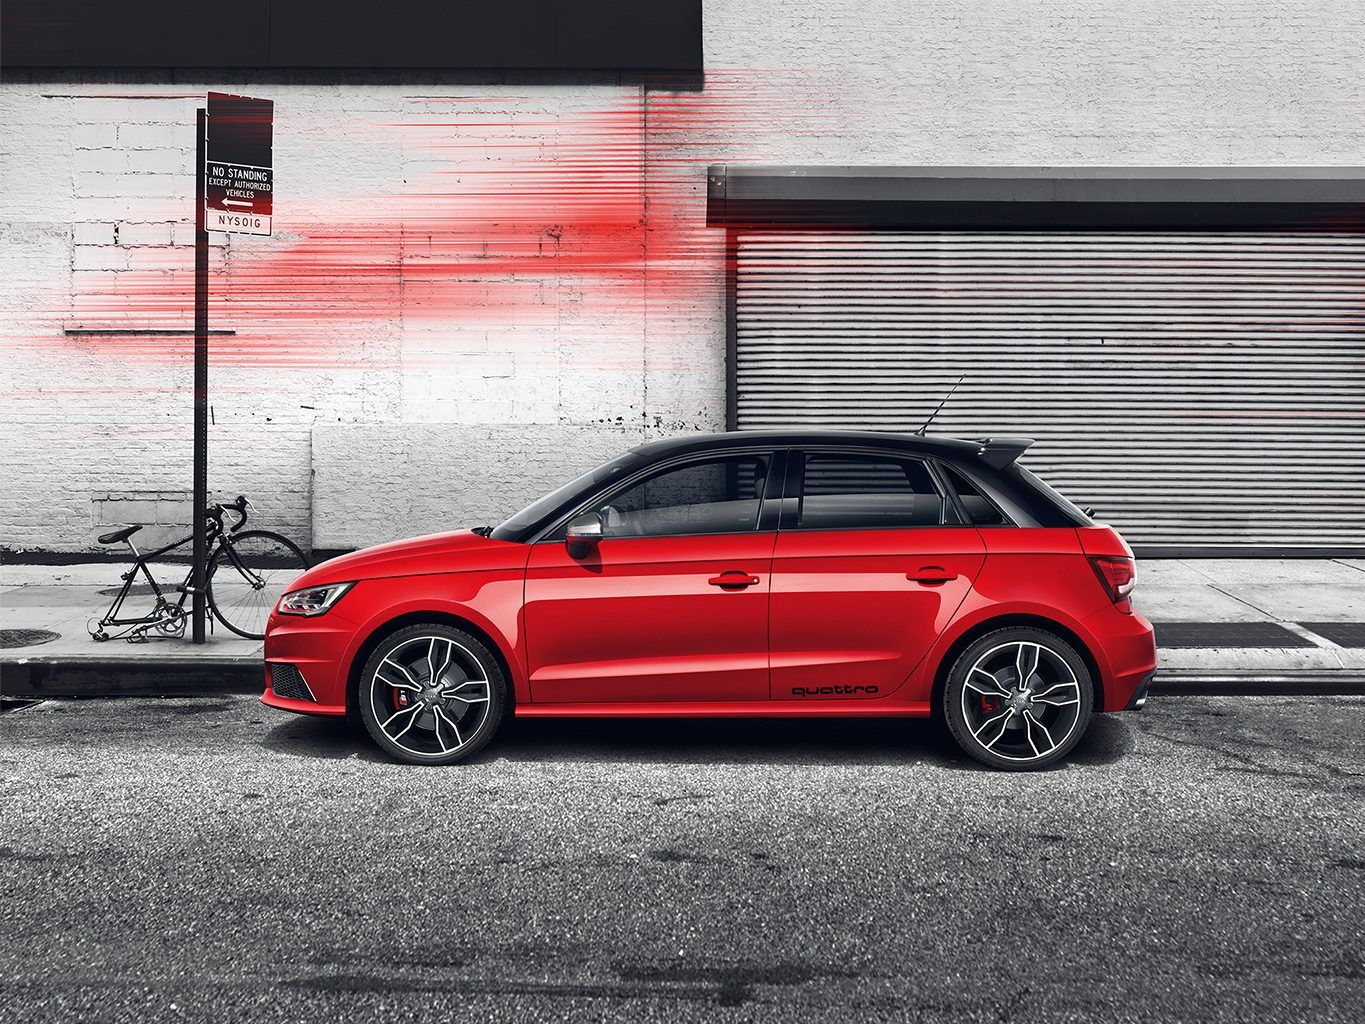 The Most Compact Of The Audi Model Series Stands Out With Its